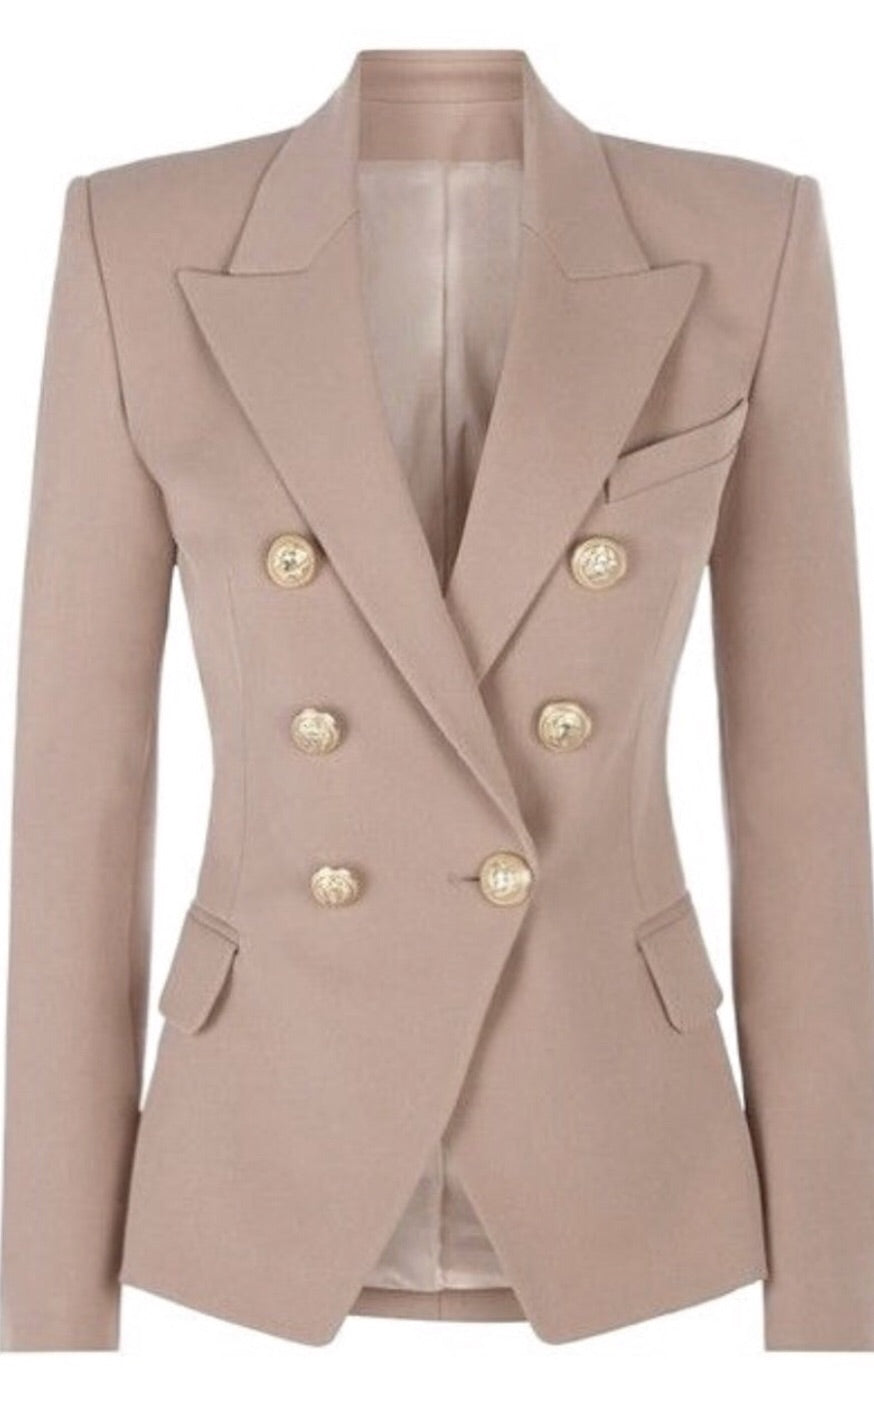 Double Breasted Blazer with Gold Hardware - Beige